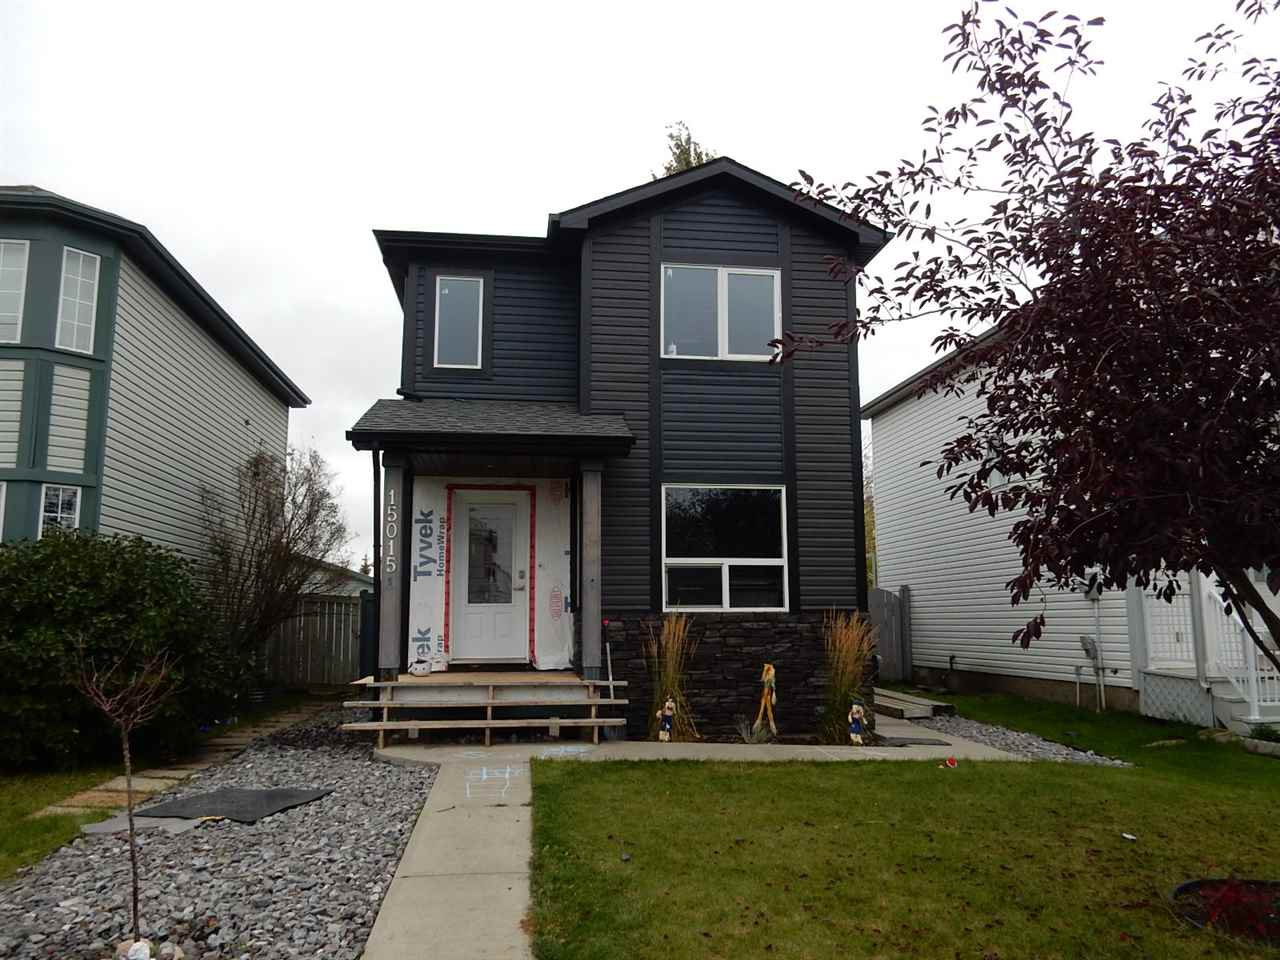 Main Photo: 15015 132 Street in Edmonton: Zone 27 House for sale : MLS®# E4183647